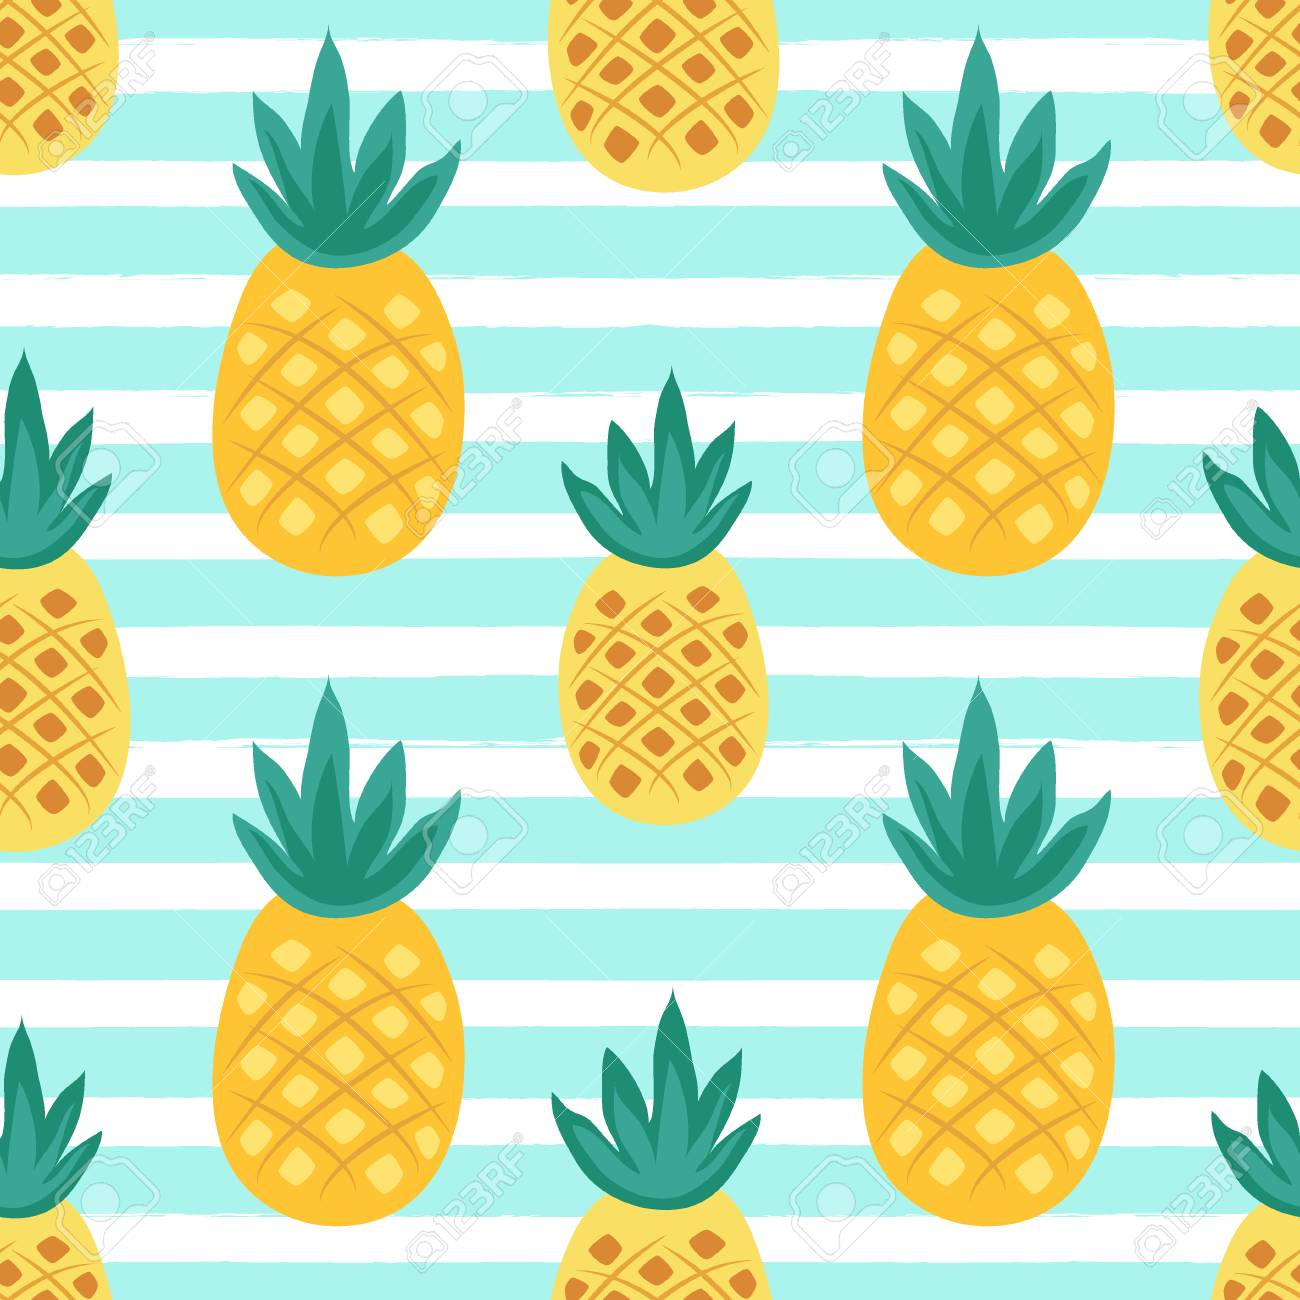 Cute seamless pattern with tropical palm leaves for your decoration - 82617938